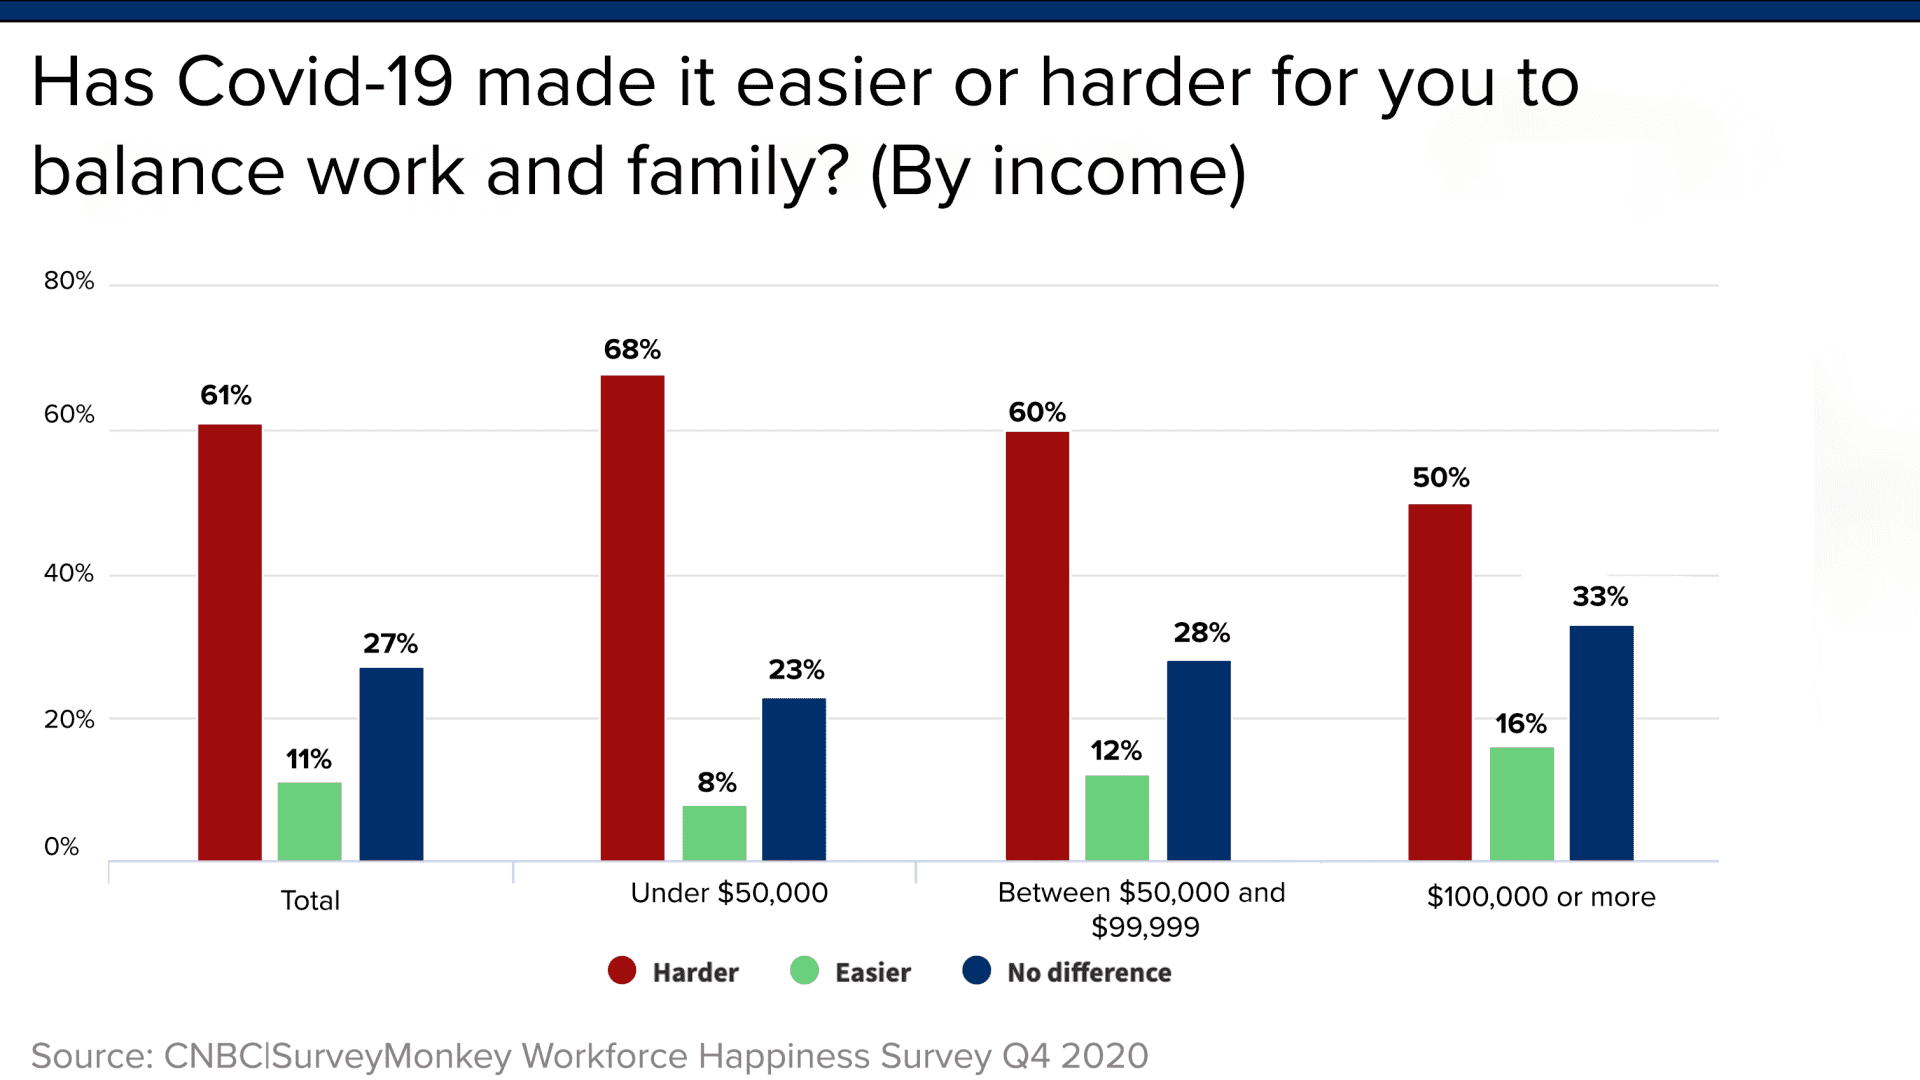 There is an 18 percentage point gap between parents with income under $50,000 and those with income over $100,000 in the ability to balance work and family during Covid-19, according to the Q4 2020 CNBC|SurveyMonkey Workforce Happiness Survey.